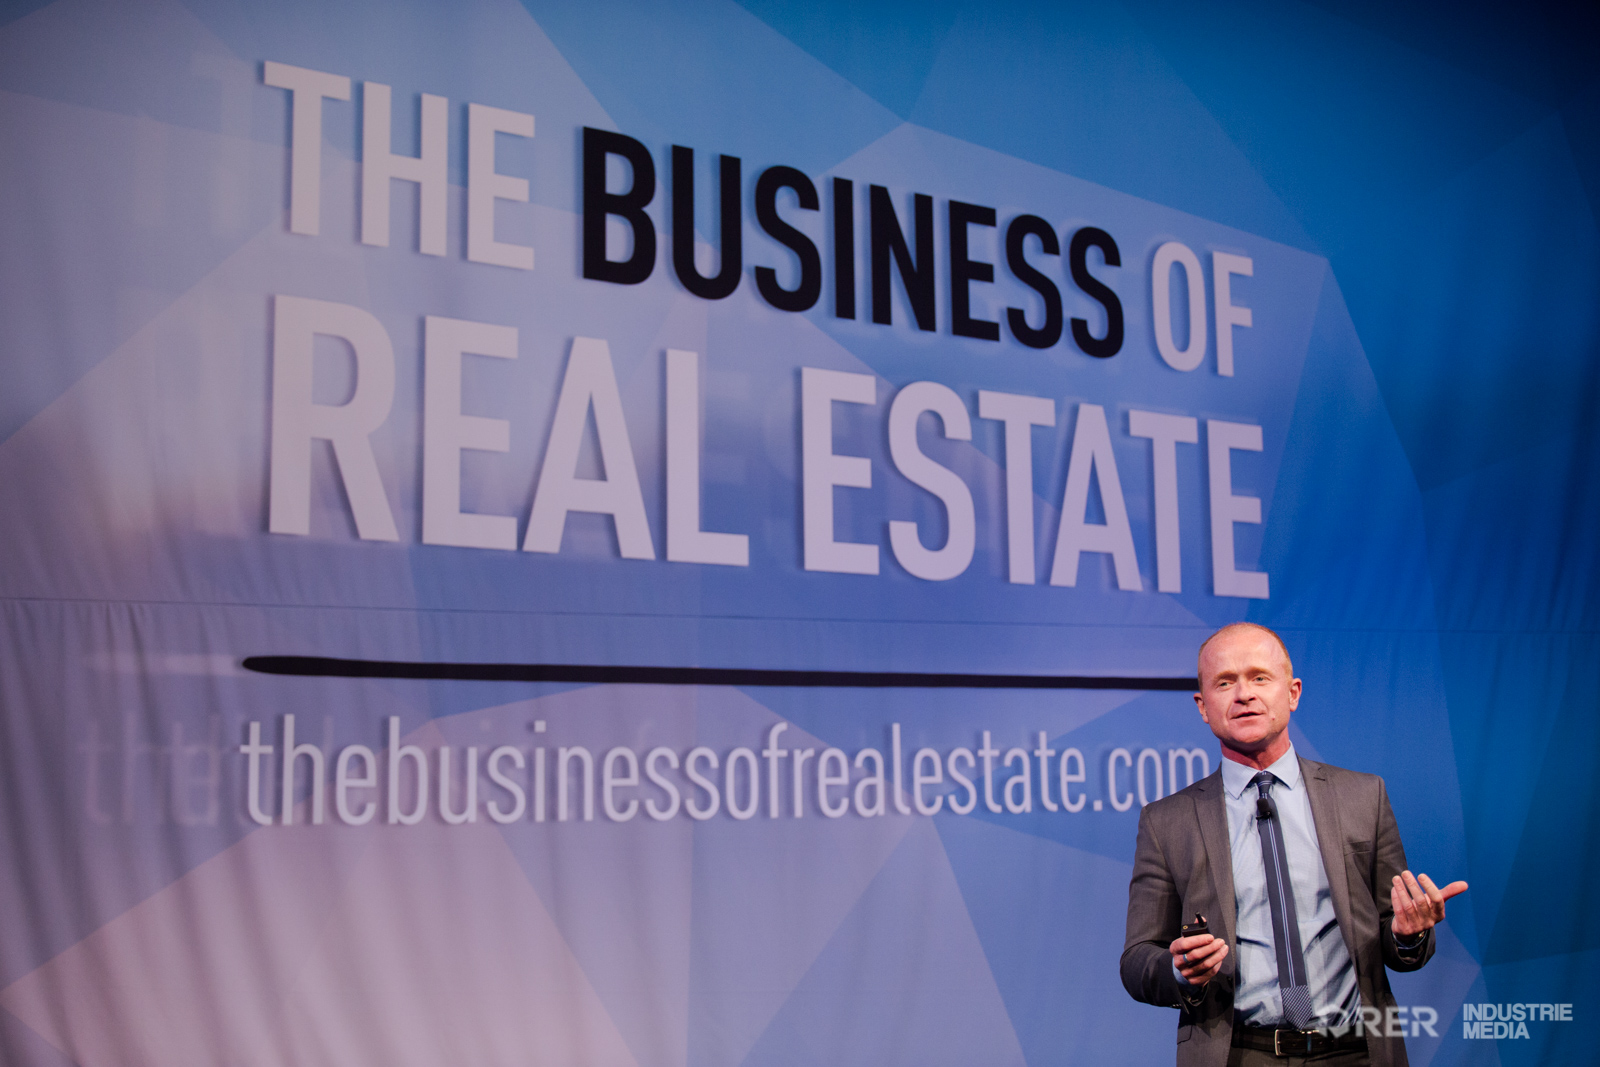 http://www.thebusinessofrealestate.com.au/wp-content/uploads/2016/09/RER_BUSINESS_OF_REAL_ESTATE_DAY_2-91.jpg